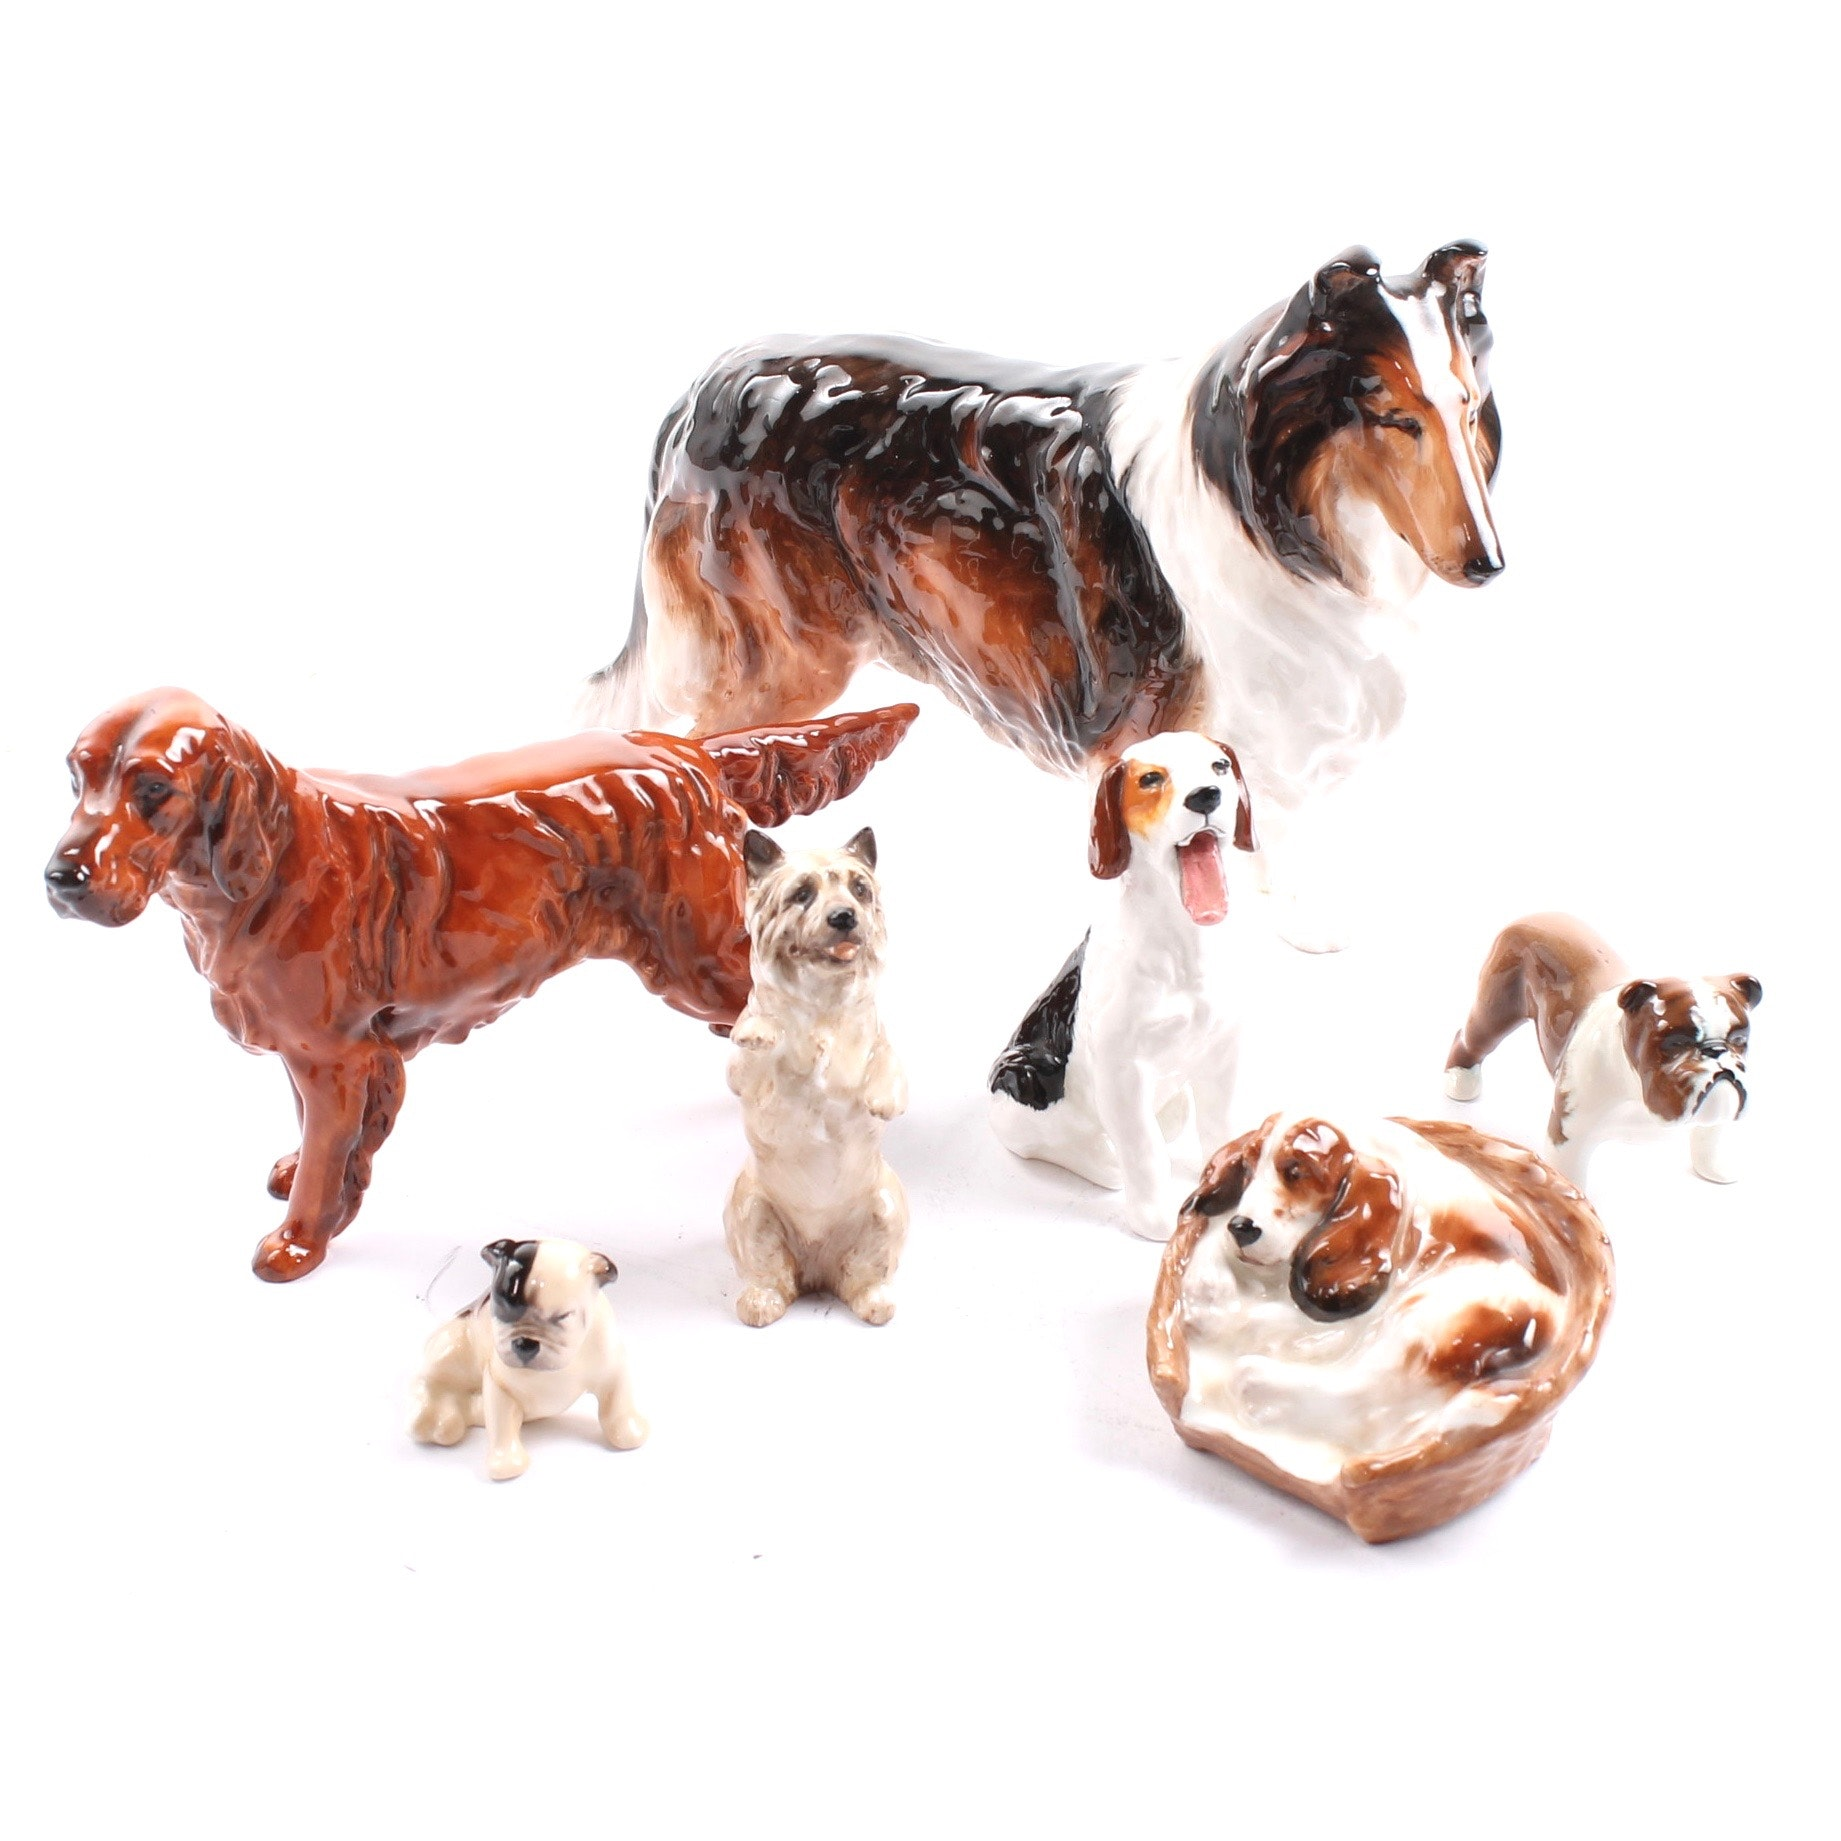 Royal Doulton and Beswick Porcelain Dog Figurines